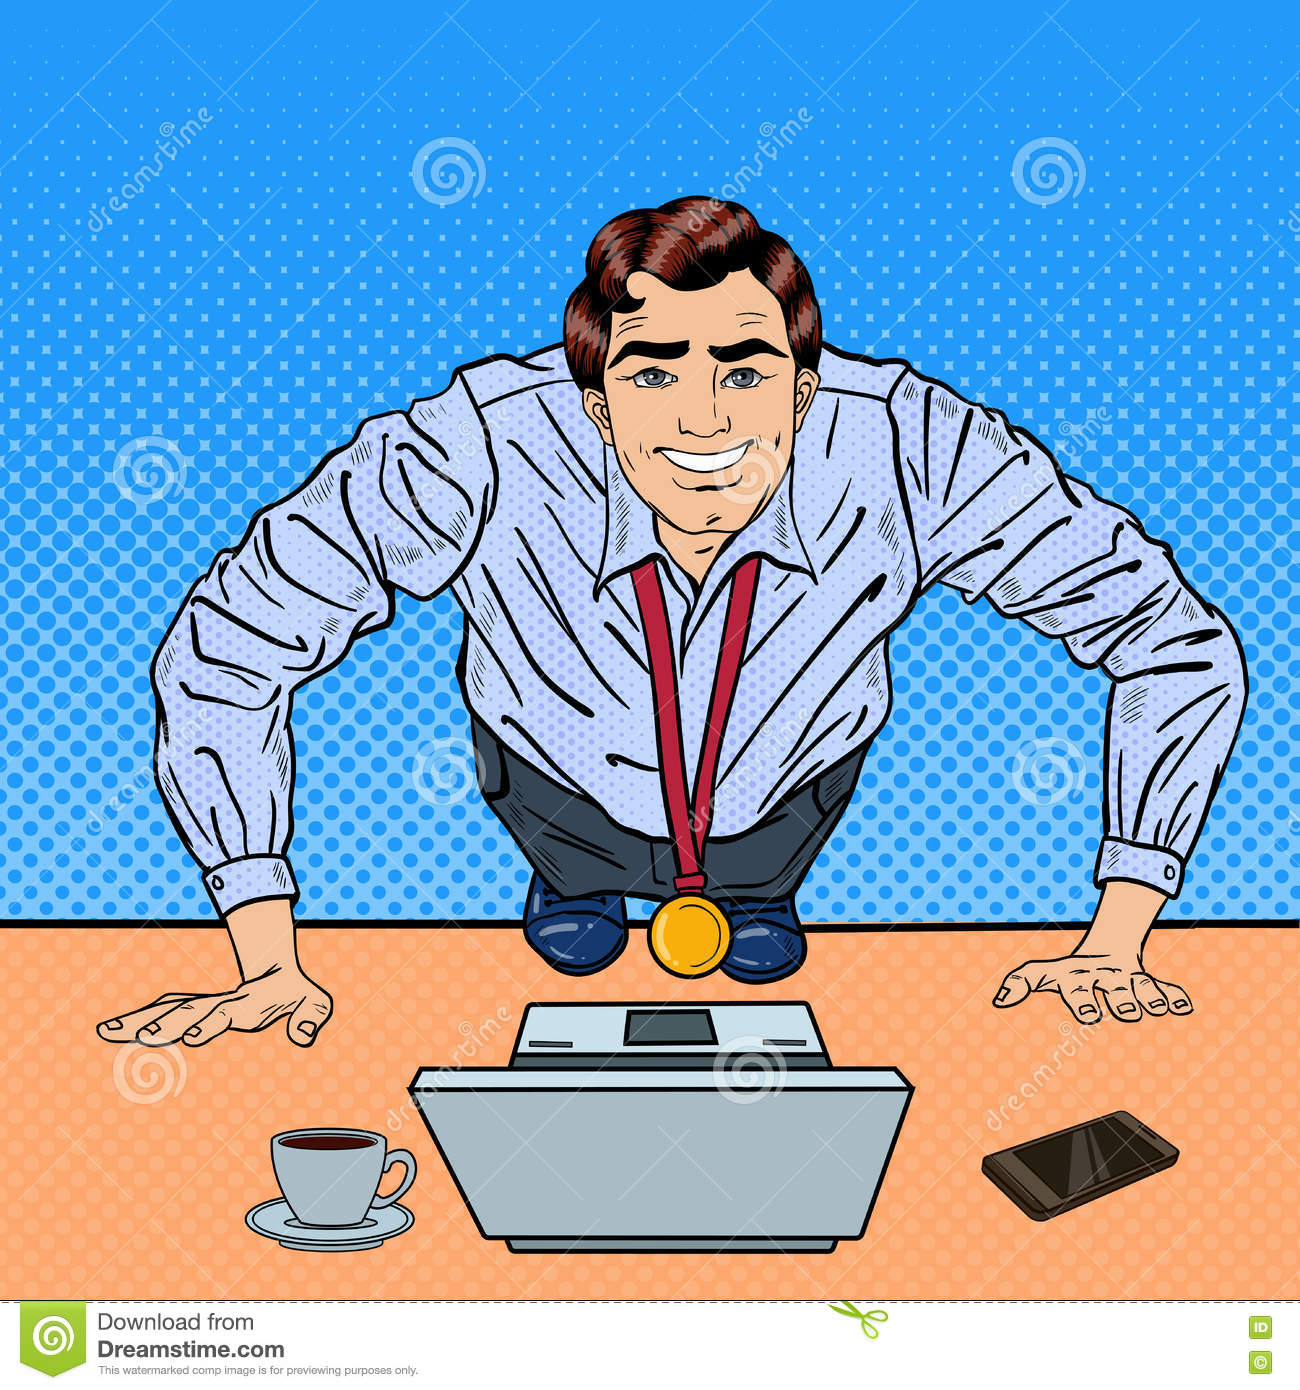 successful pop art business man with medal doing push ups on the office table with laptop stock. Black Bedroom Furniture Sets. Home Design Ideas